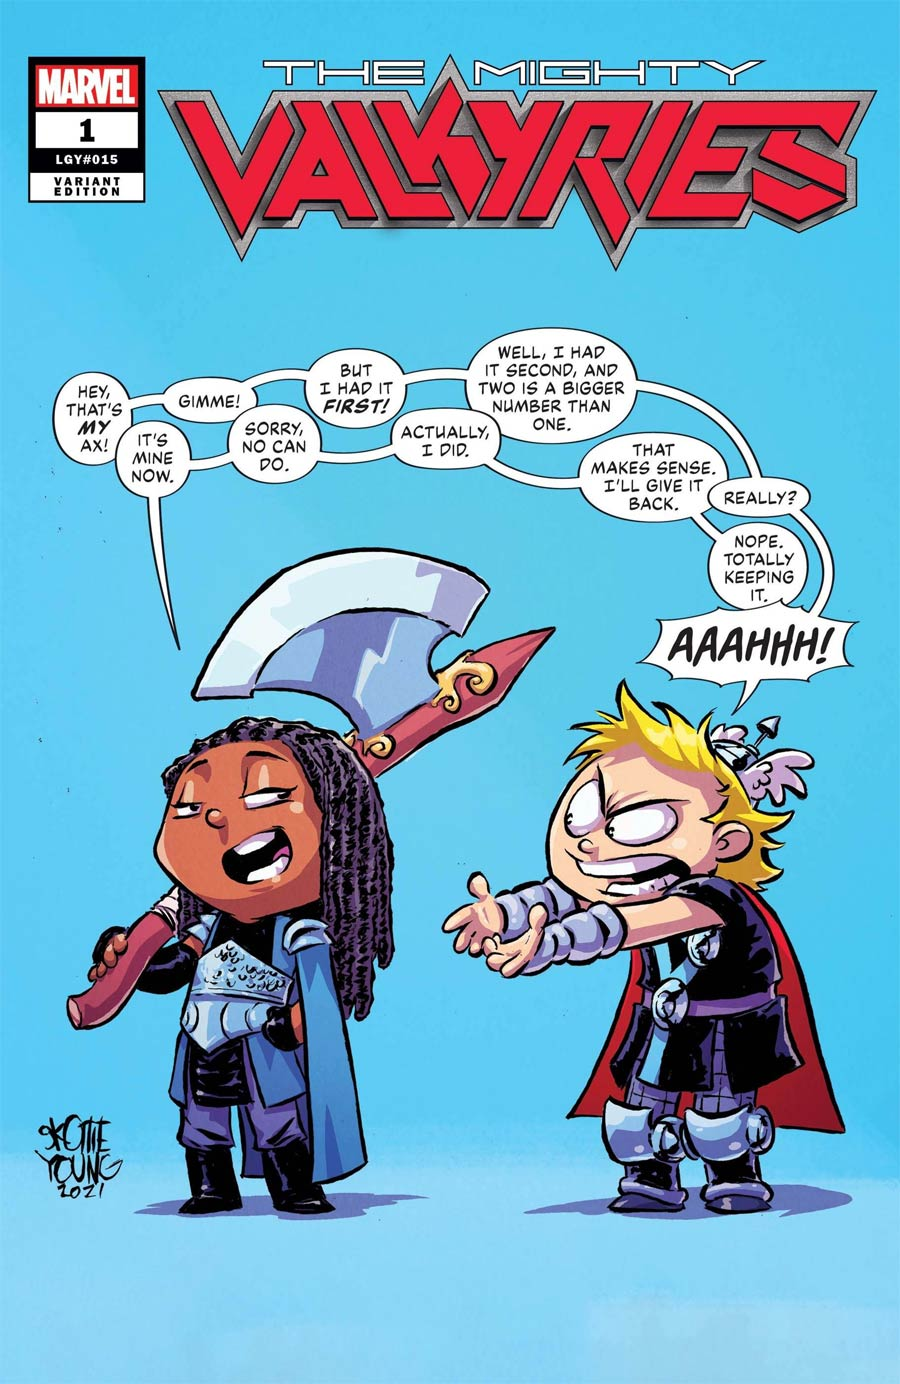 Mighty Valkyries #1 Cover C Variant Skottie Young Cover